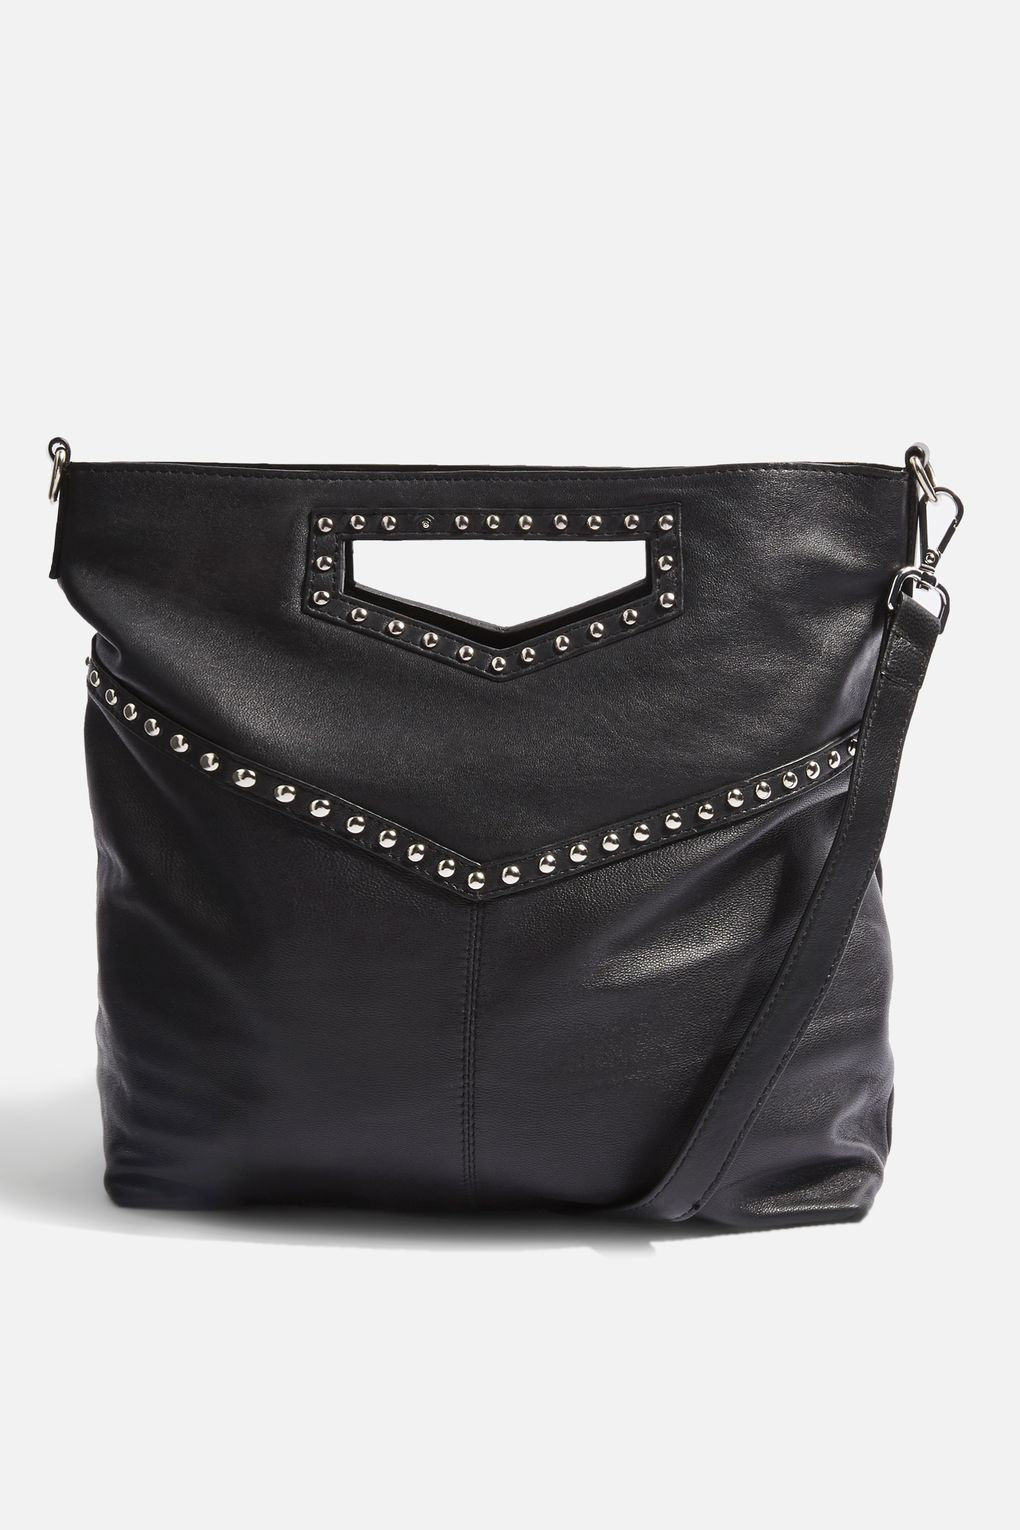 d87942ccab Leather Studded Grab Handle Tote Bag at Topshop #black #leather #tote  #totebags #handbags #bags #womensfashion #studs #studded #edgystyle  #edgyfashion ...